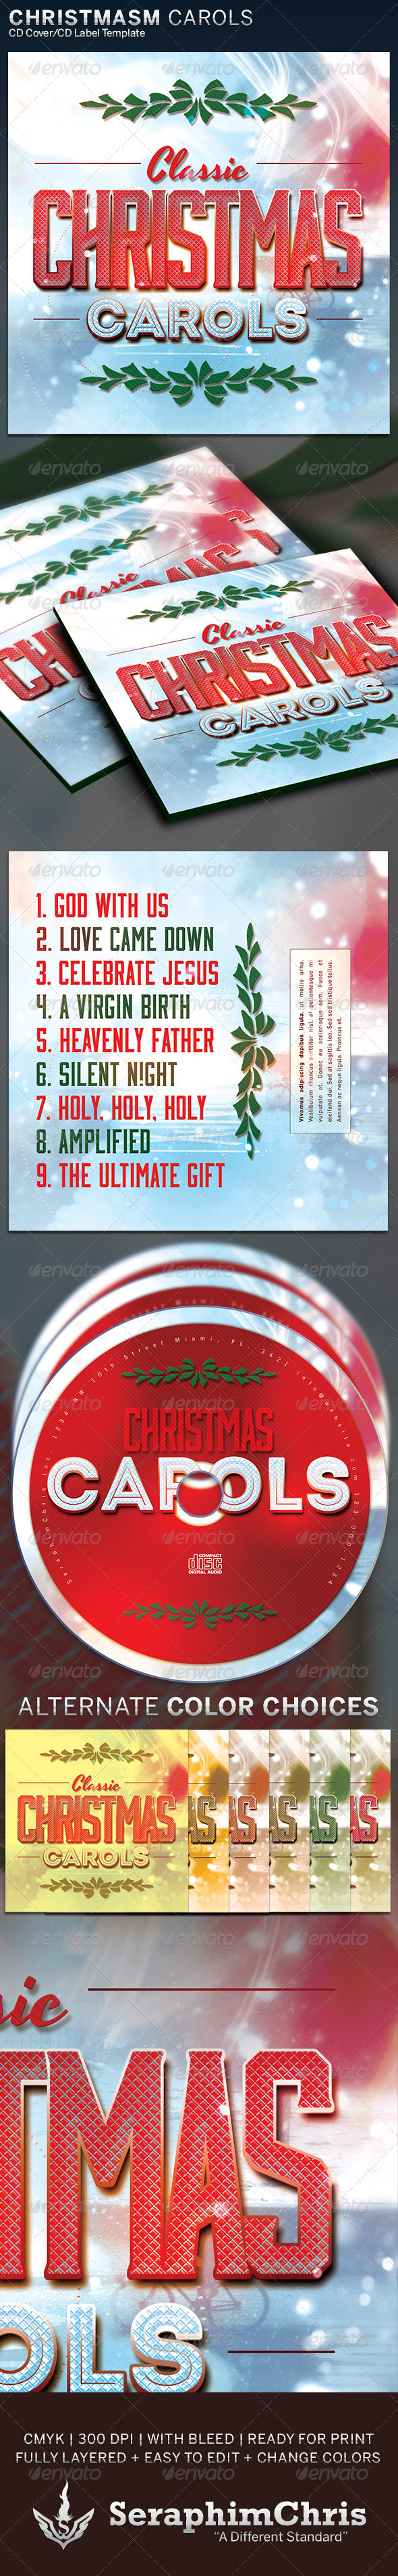 Christmas Carols CD Cover Artwork Template